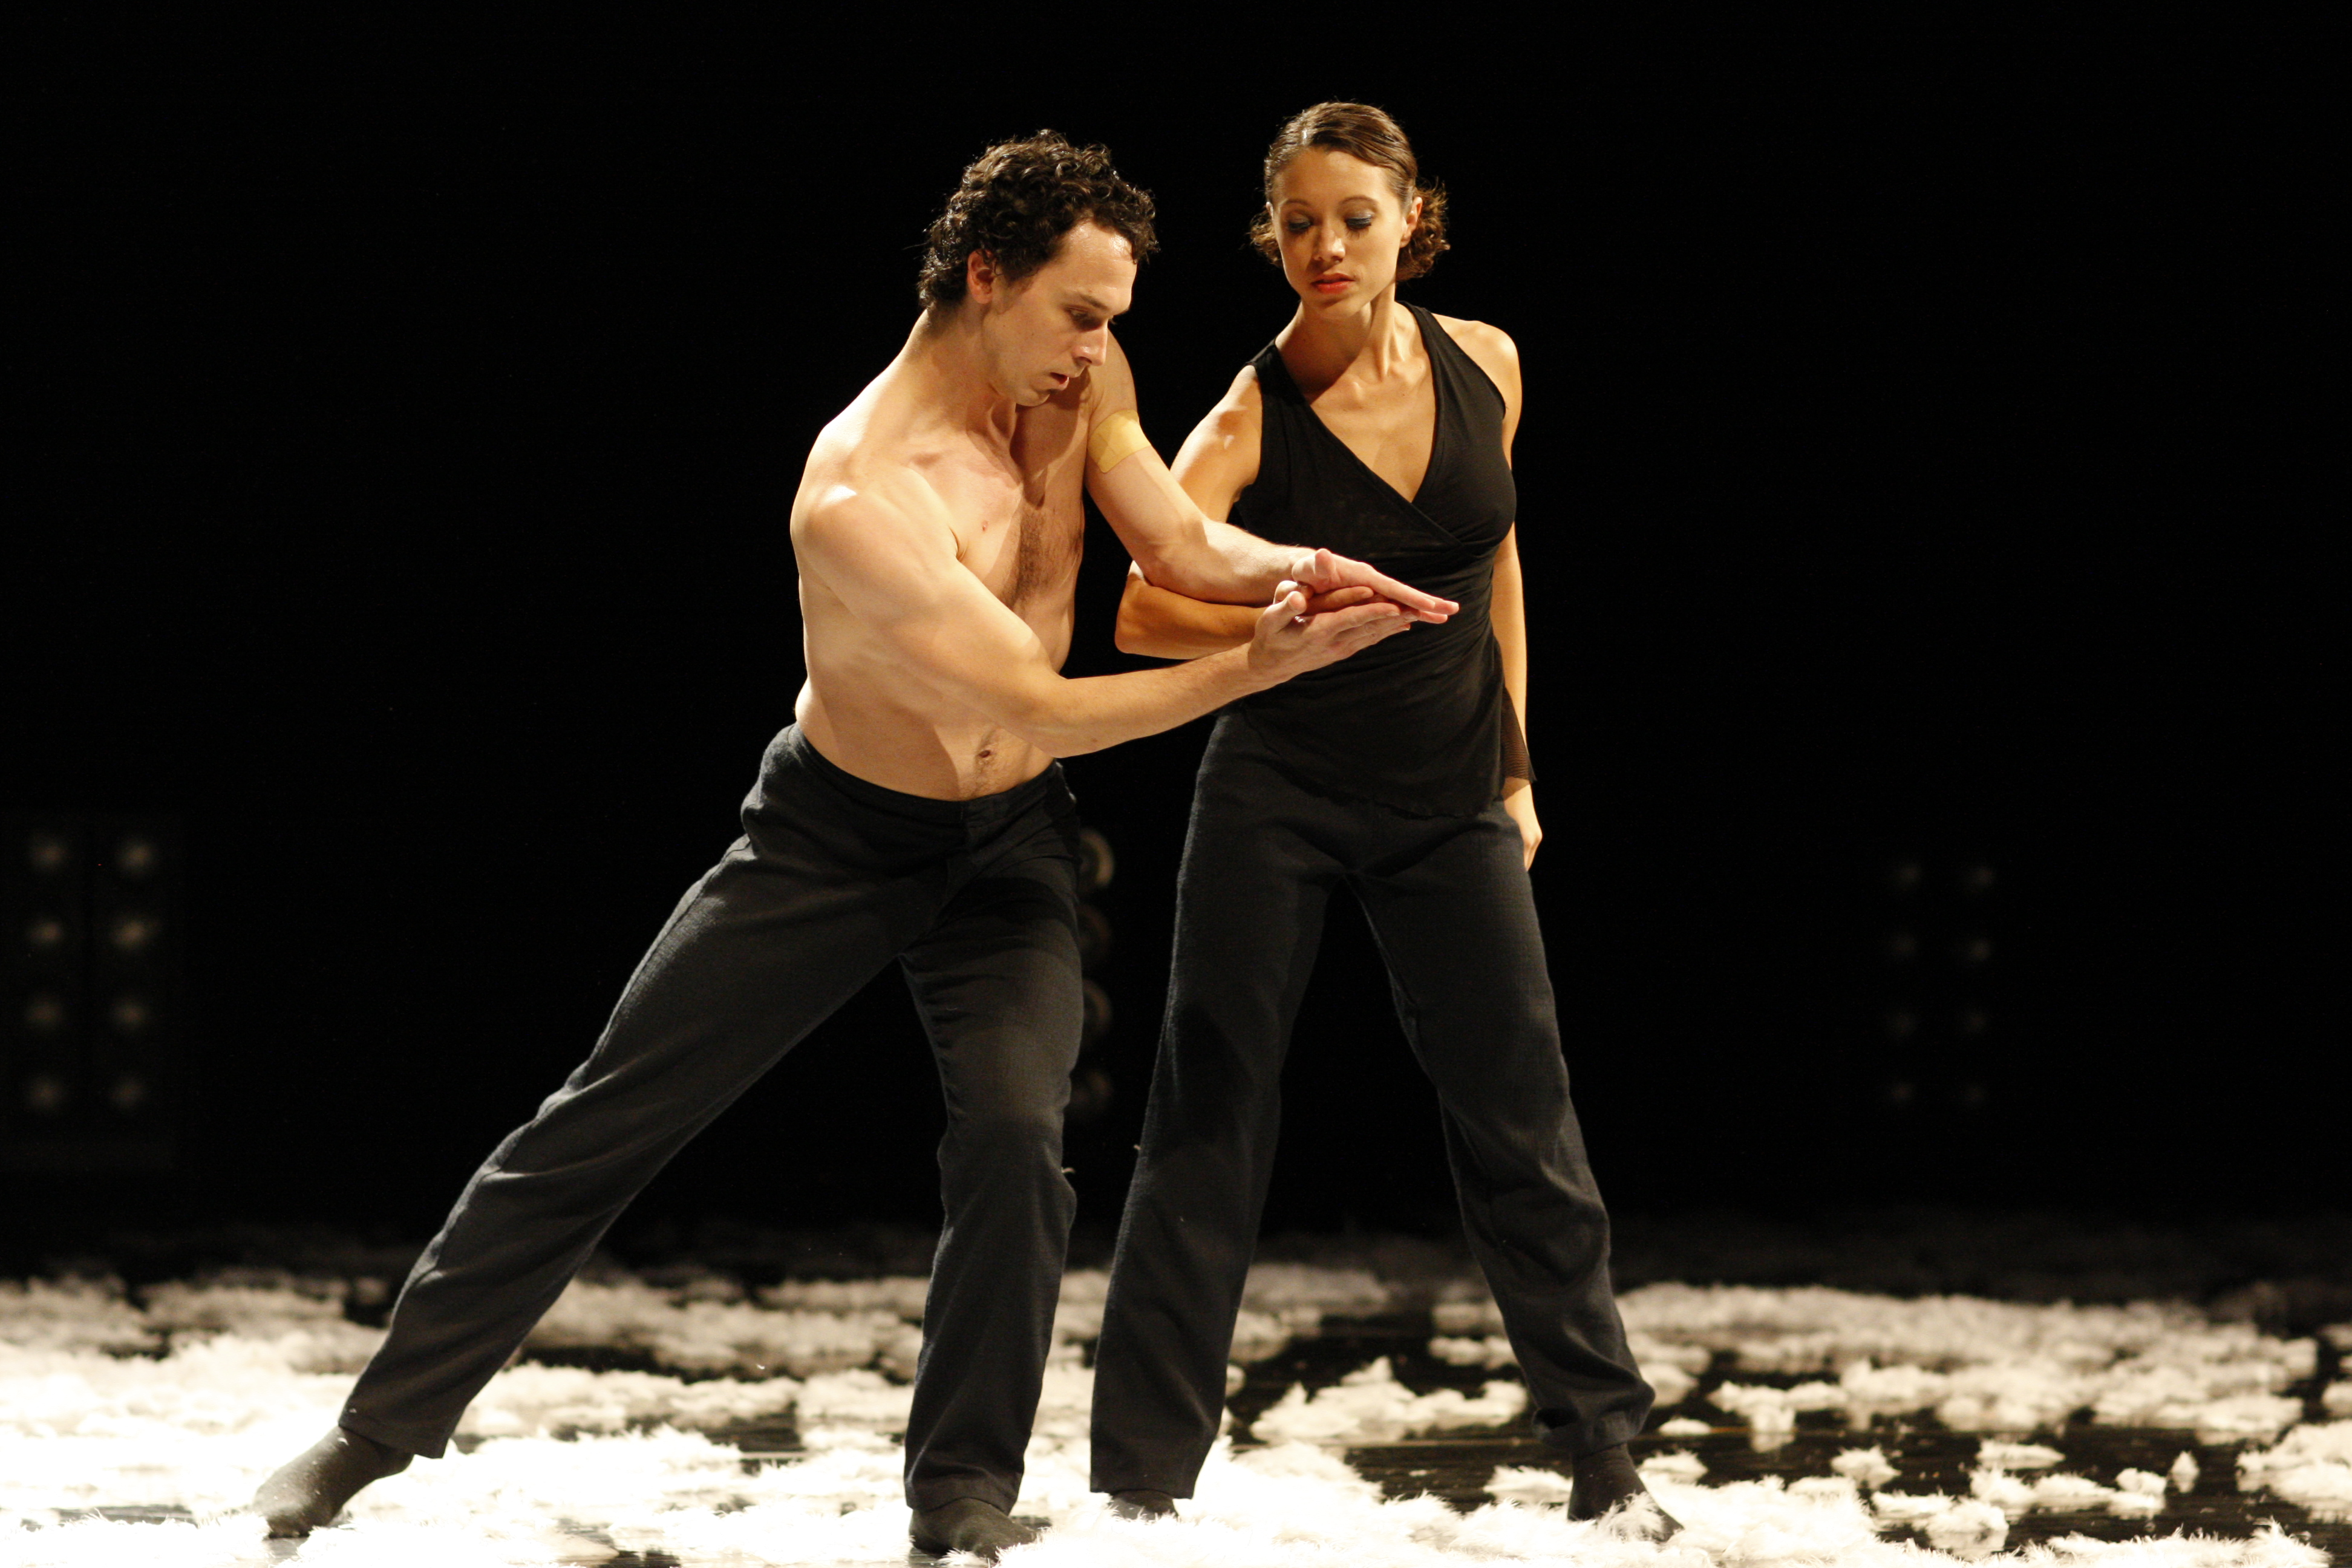 Terence Marling and Shannon Alvis in Extremely Close. Photo by Todd Rosenberg.